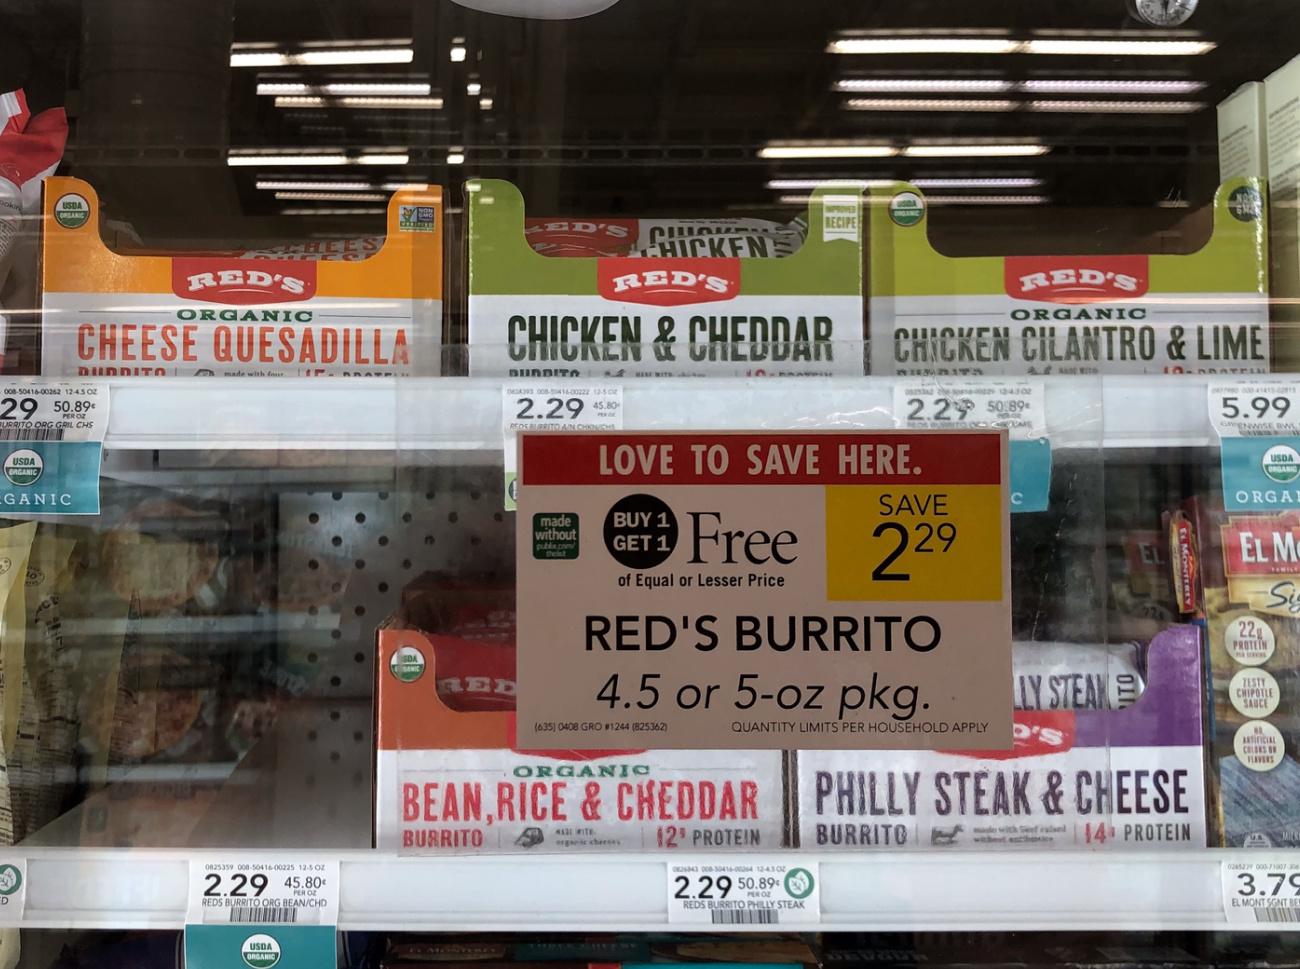 Pick Up Red's Burritos As Low As FREE This Week At Publix on I Heart Publix